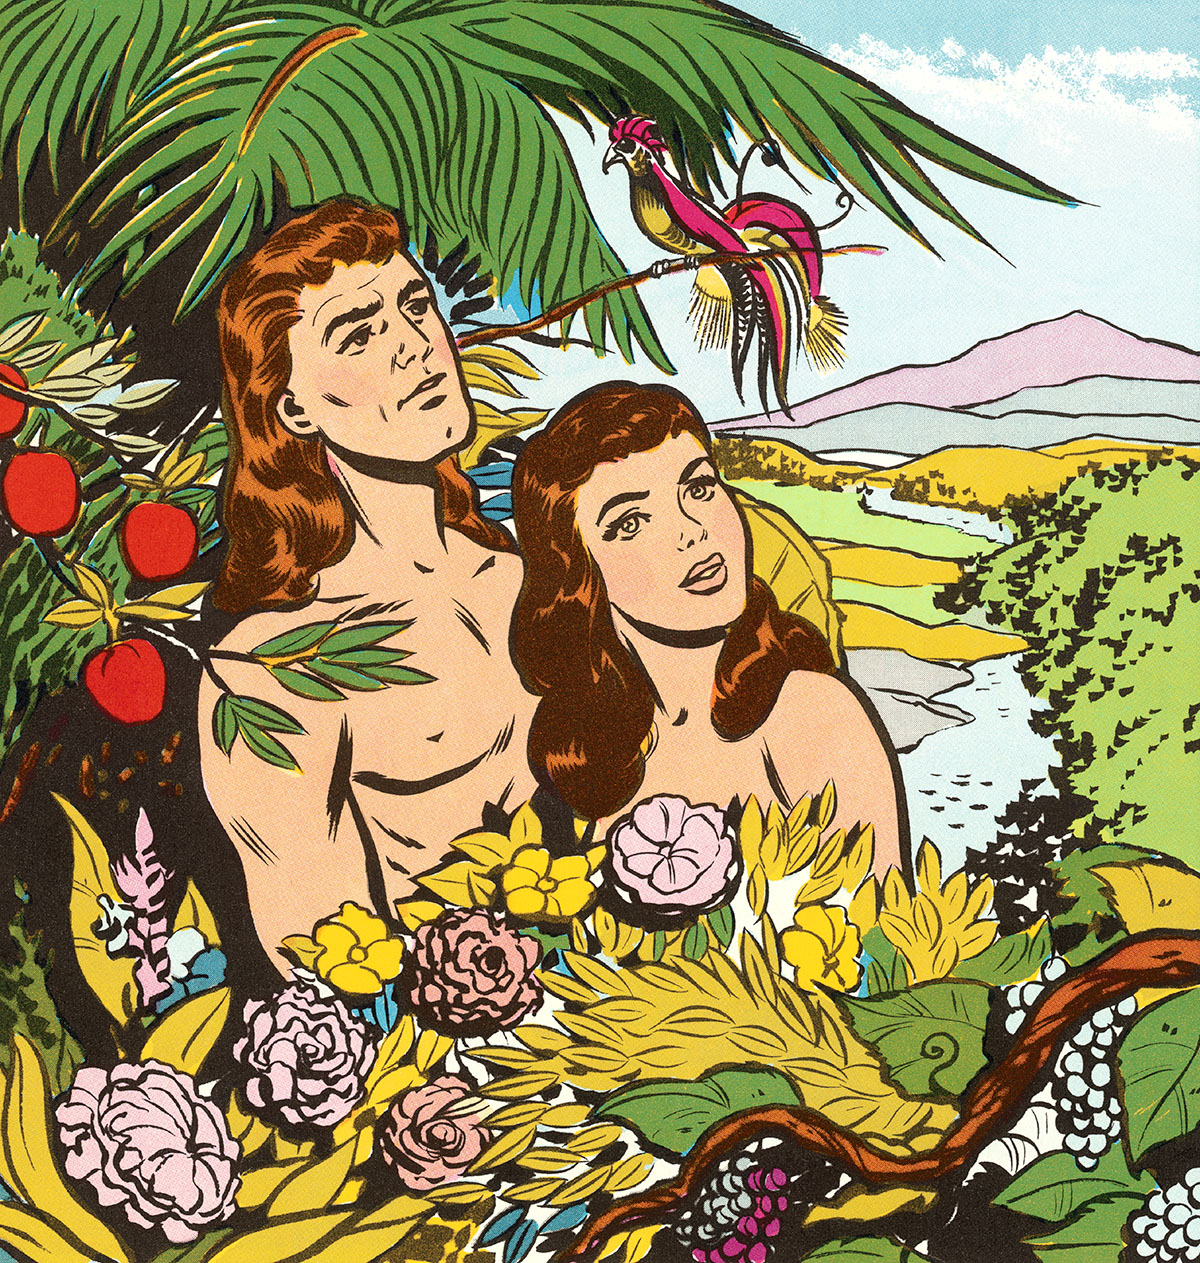 When Did God Create Adam and Eve?